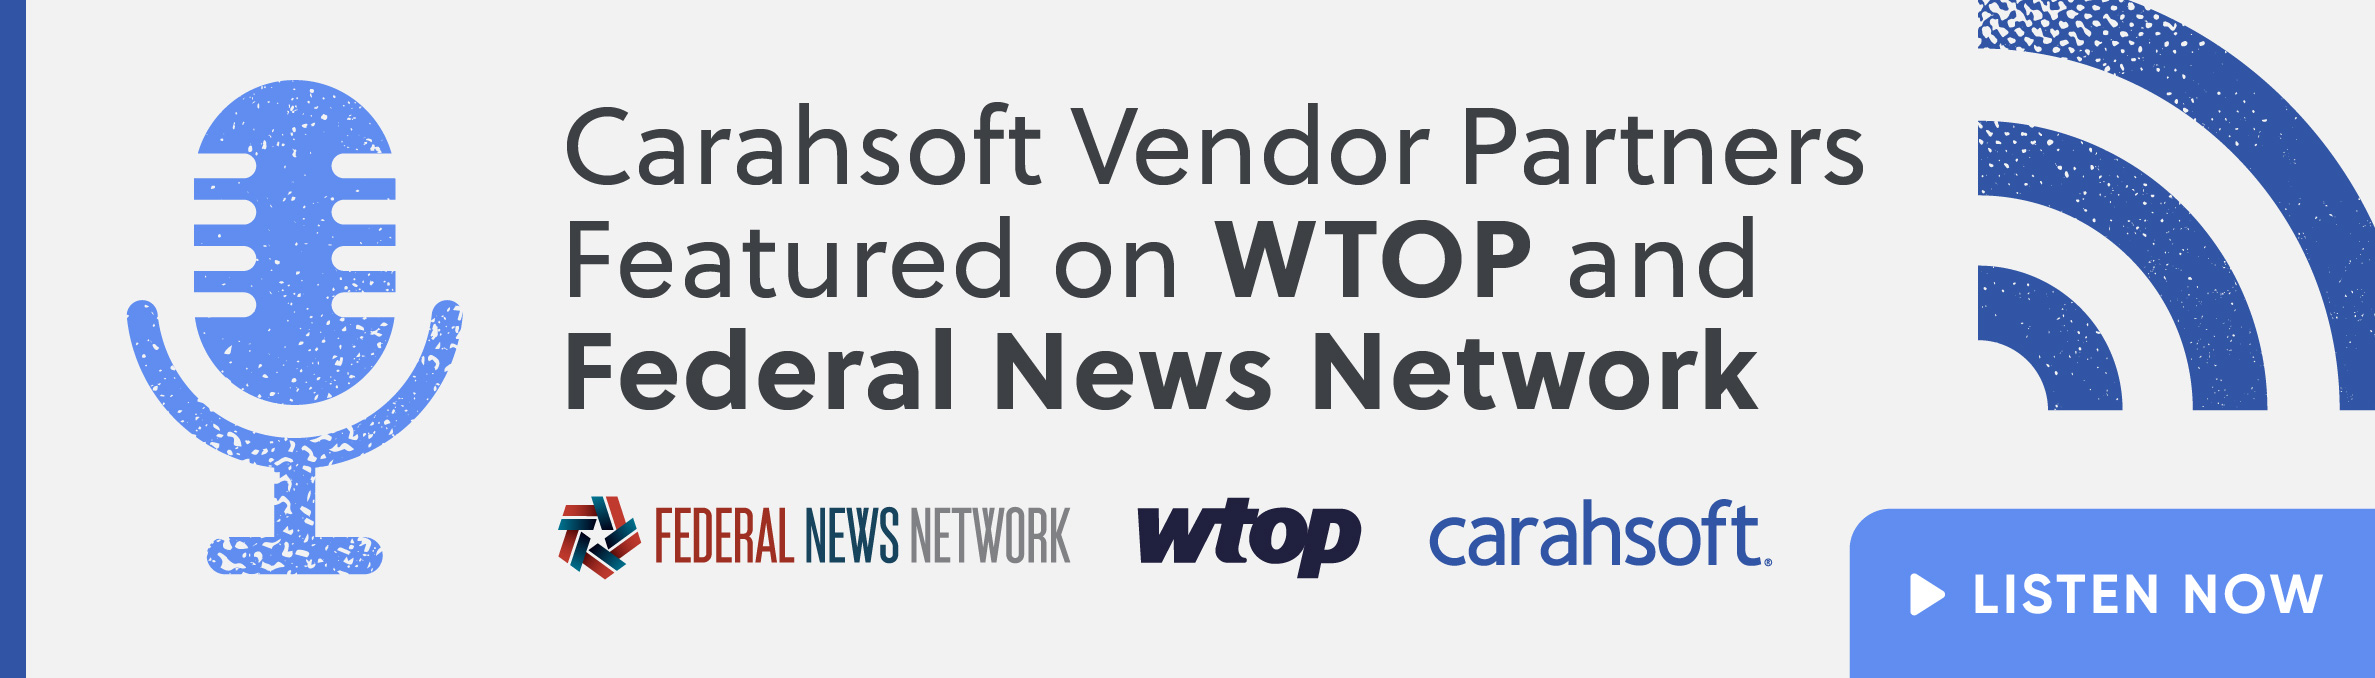 WTOP/FNN featured partners banner